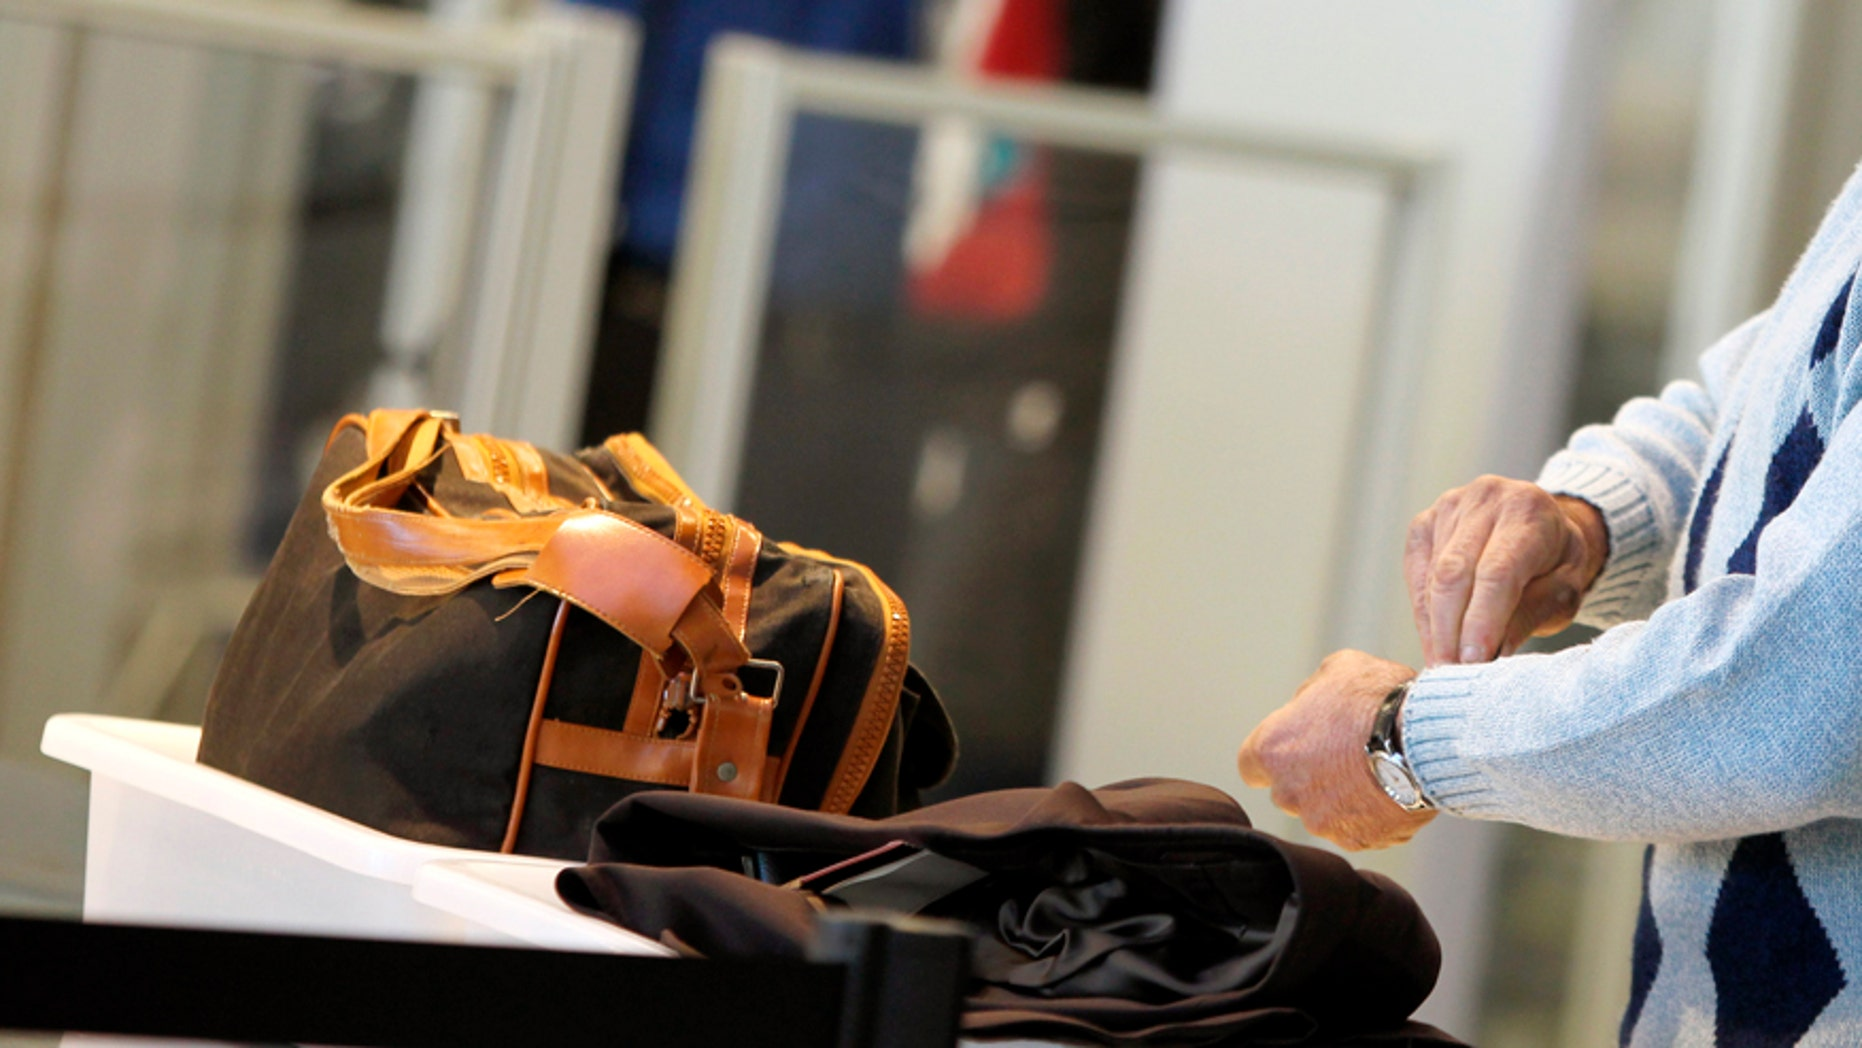 An airline passenger removes his watch before being screened at a security checkpoint.